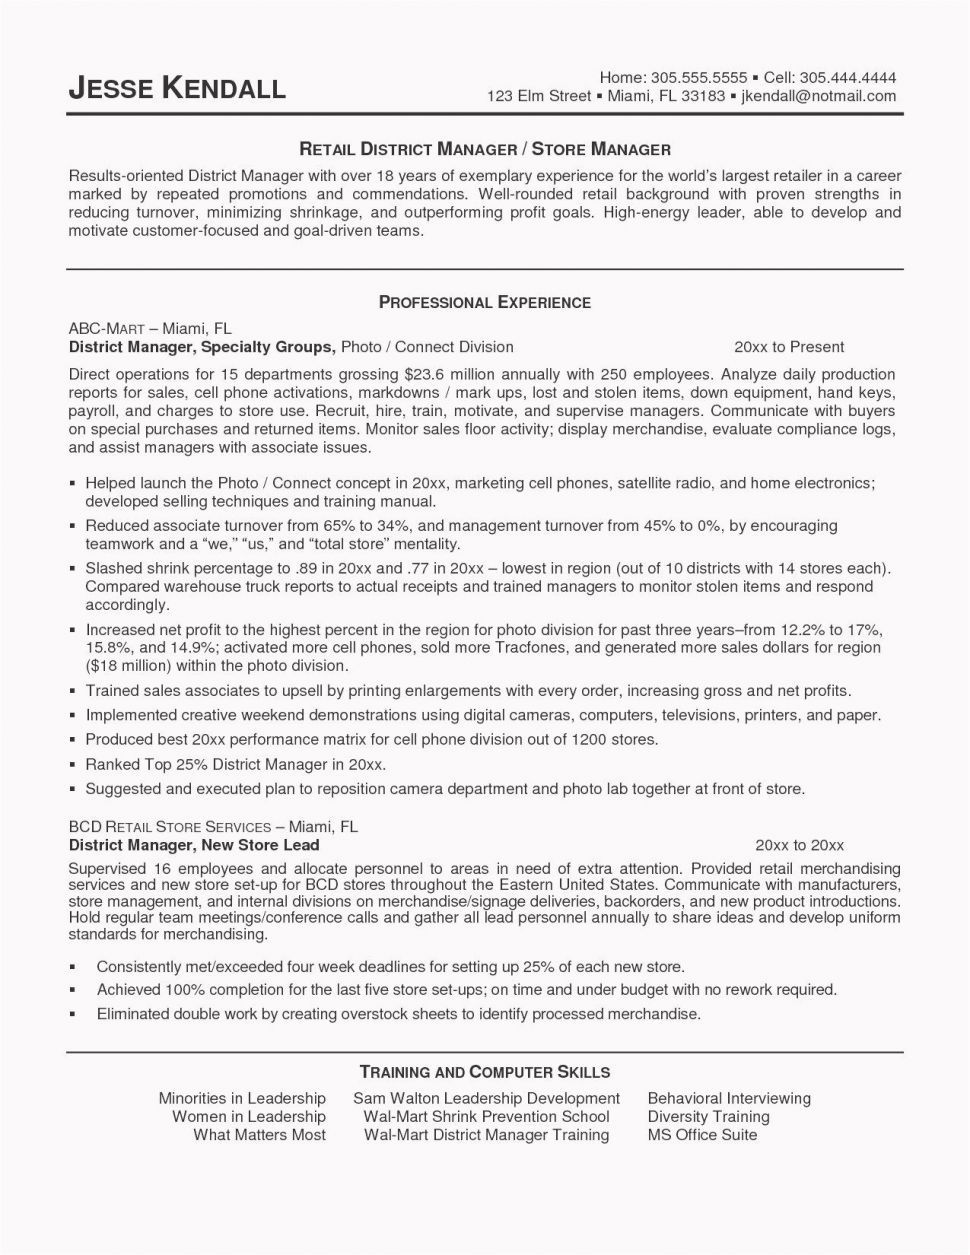 warehouse resume template free manager templates clerk job examples acting very basic Resume Warehouse Clerk Resume Examples